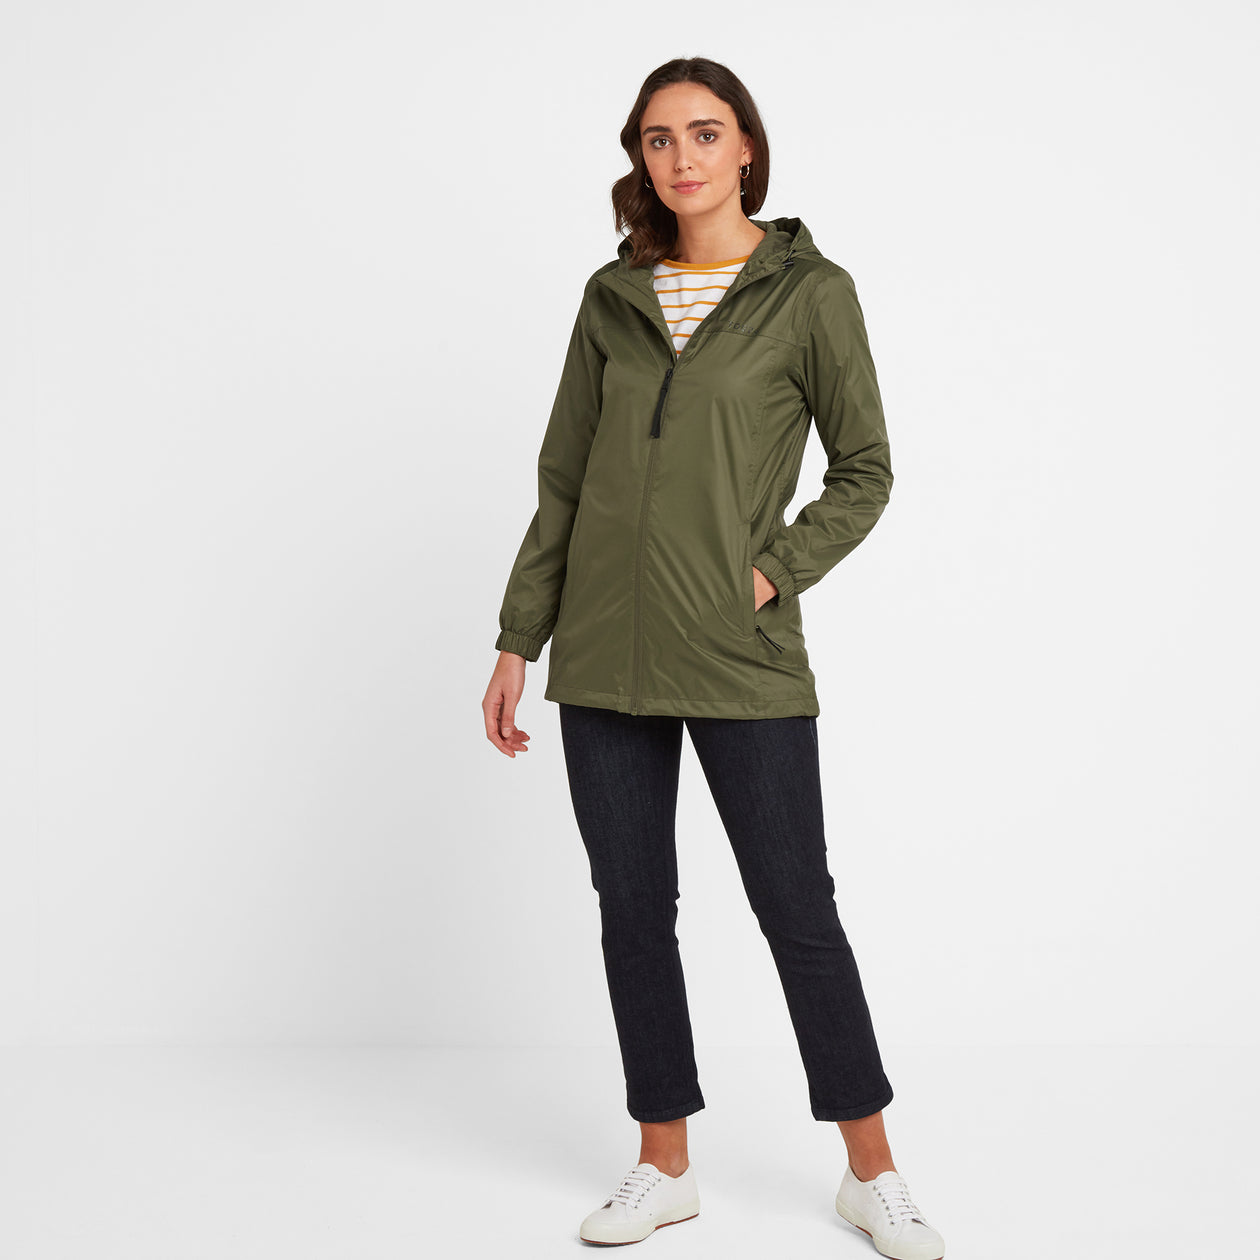 Craven Womens Long Waterproof Packaway Jacket - Light Khaki image 4